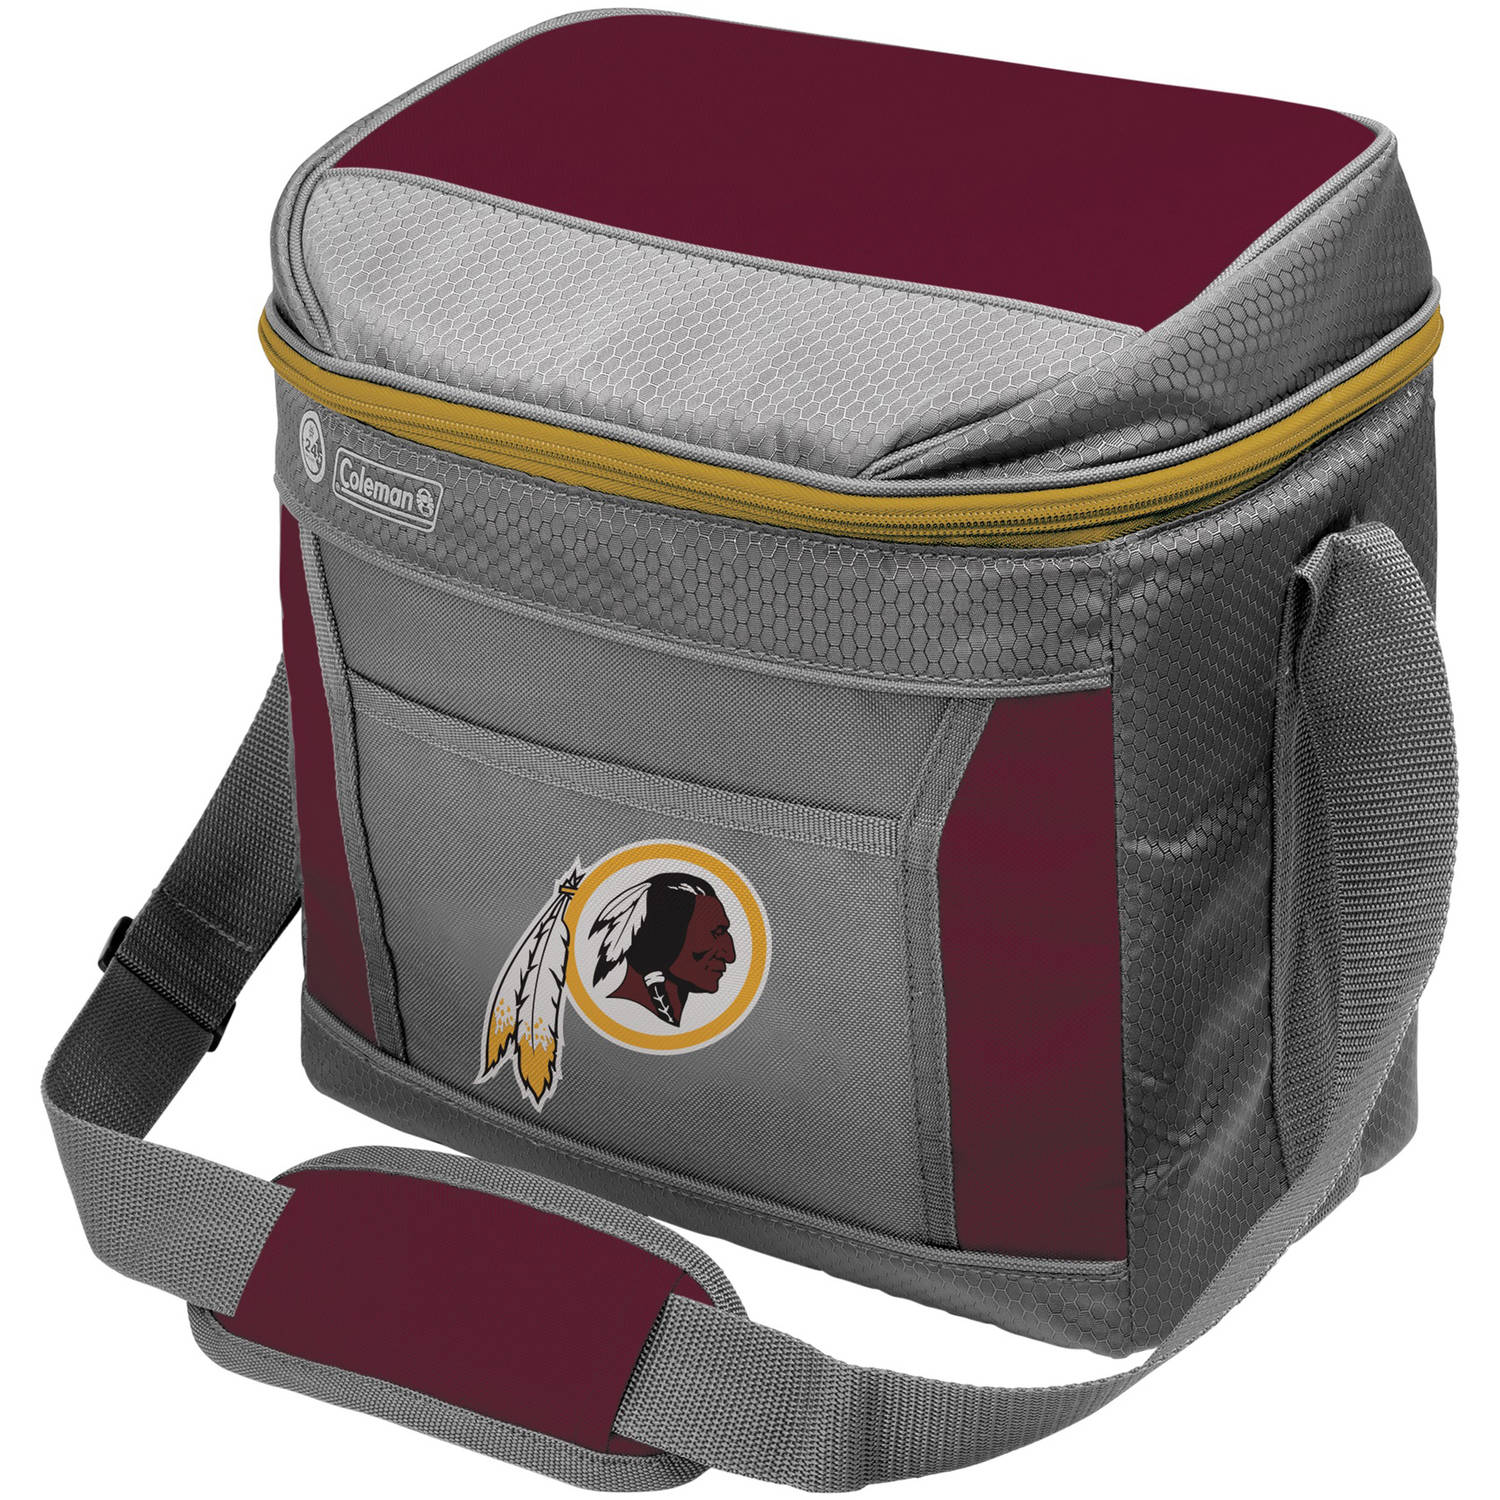 NFL 16-Can Soft-Sided Cooler, Washington